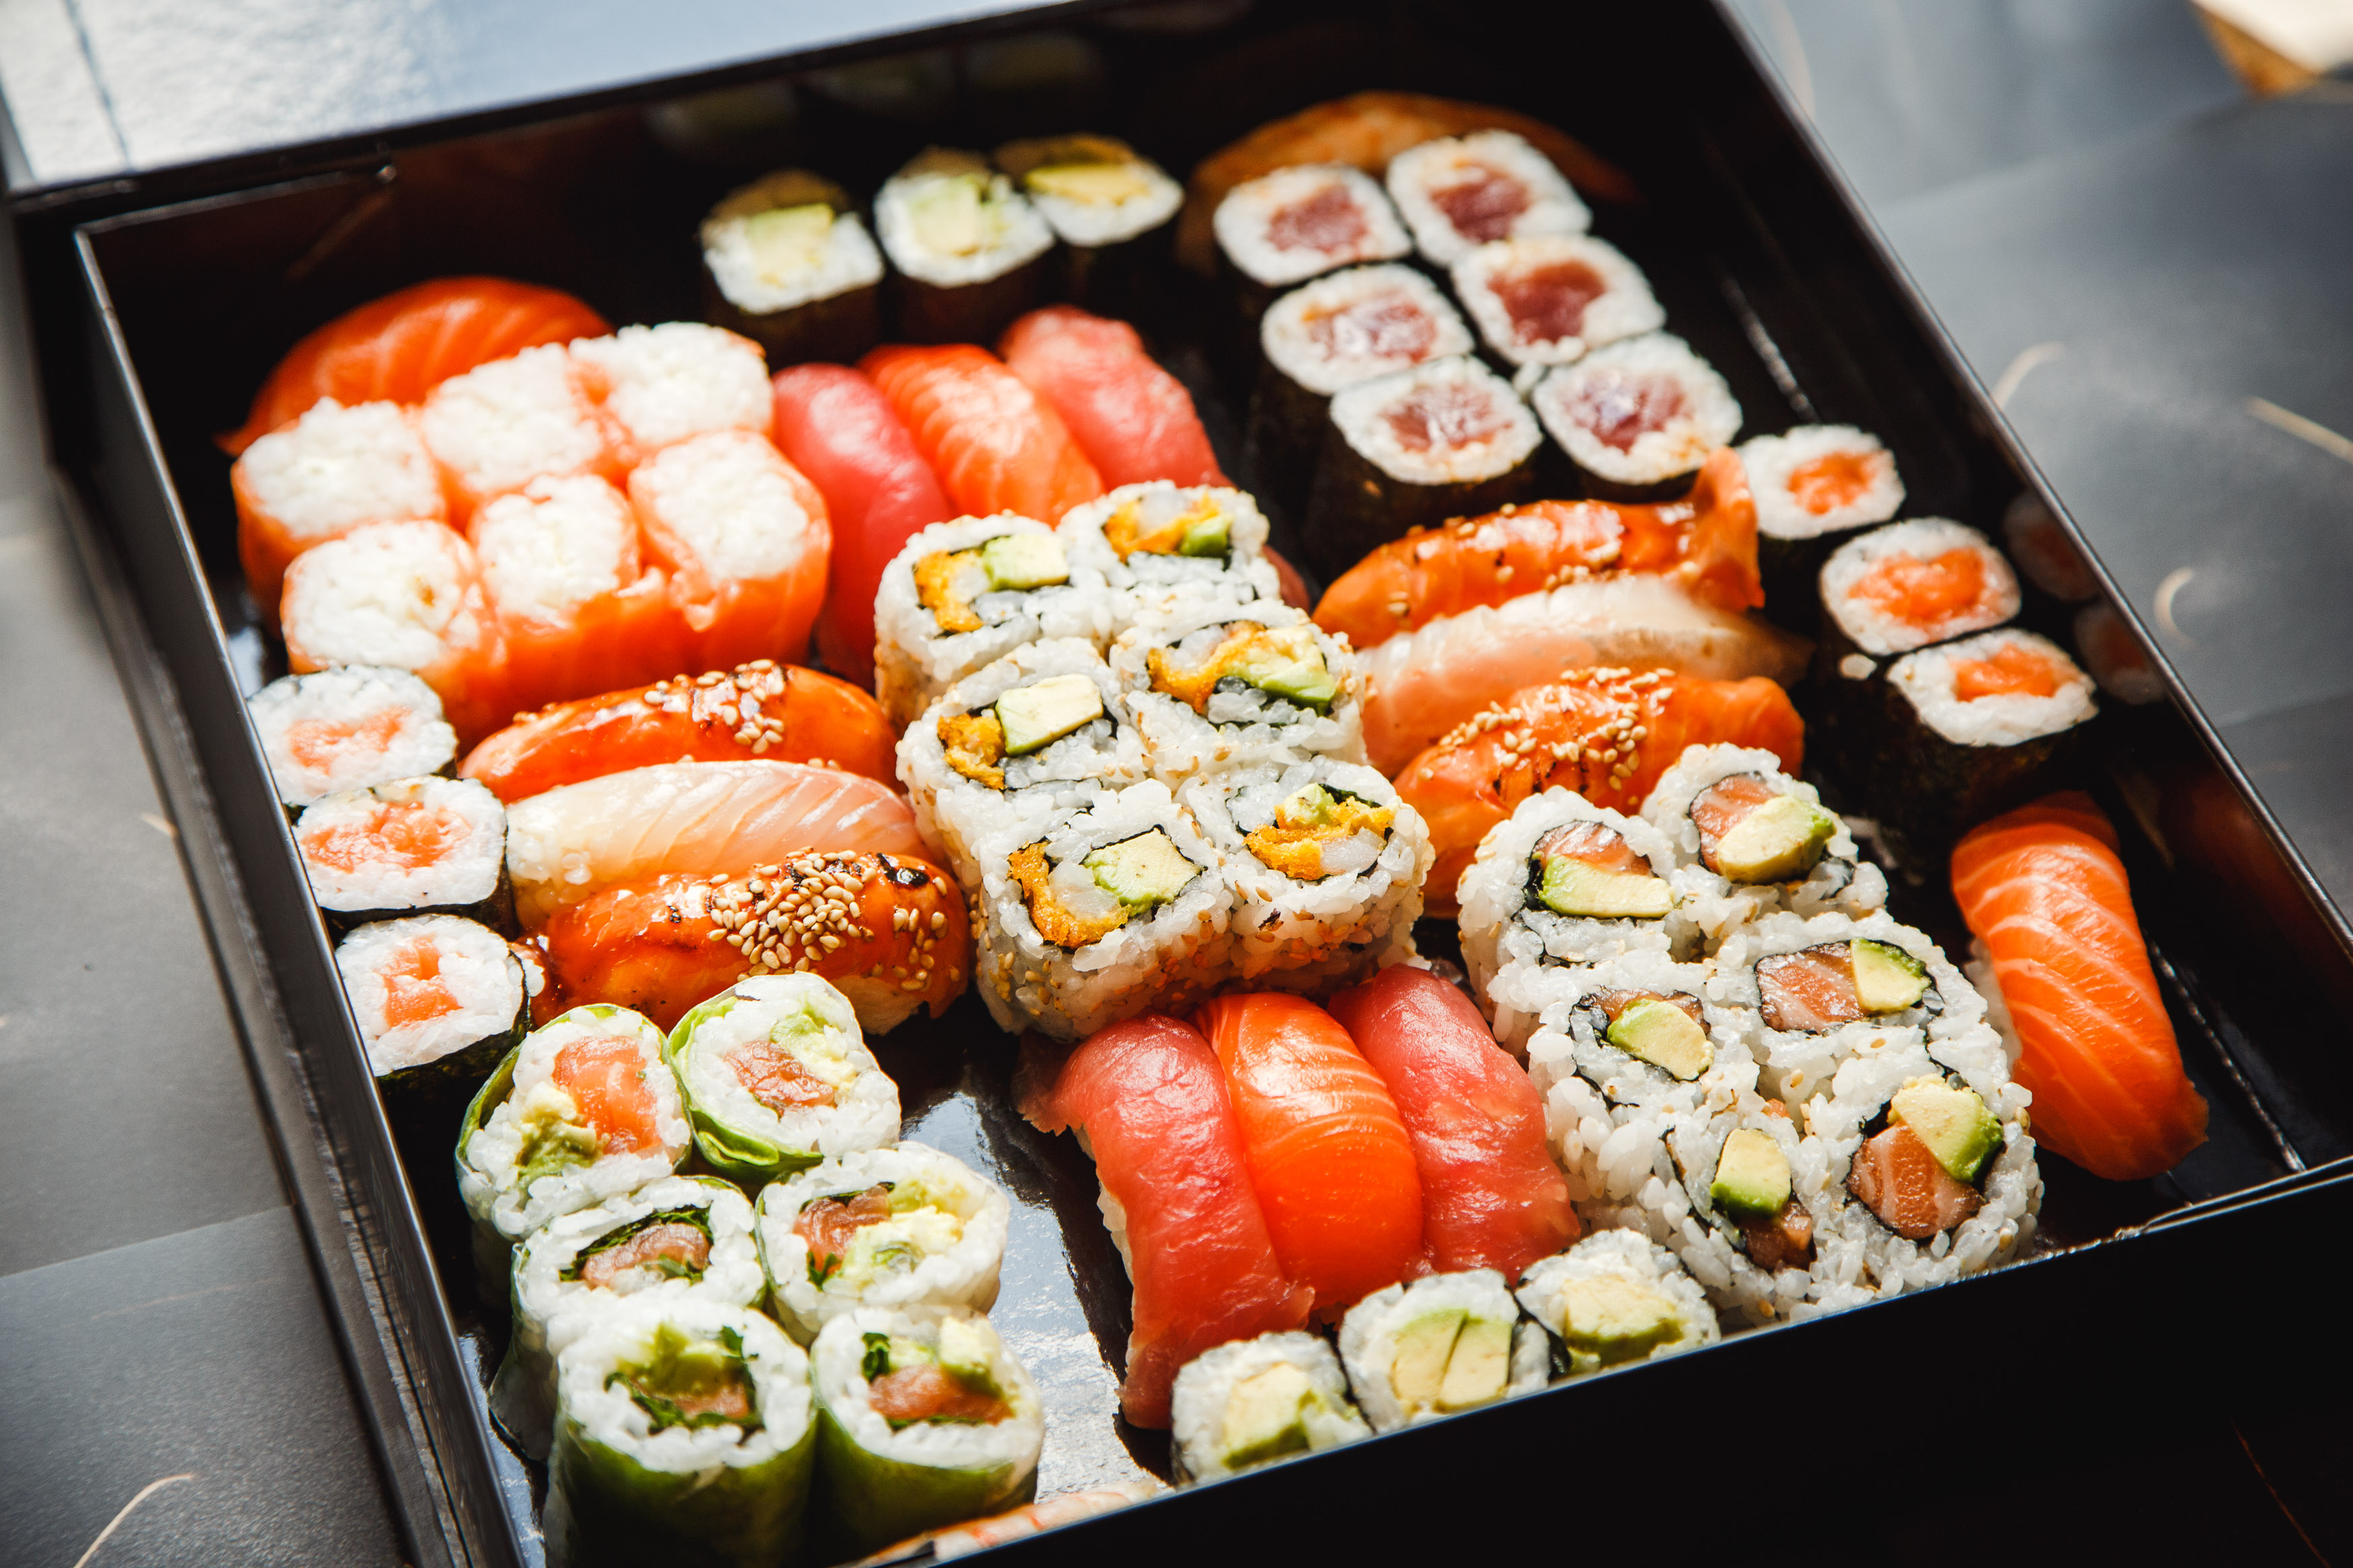 sushi survey Want to know what your customers think send a survey let's look at survey  your customers and the 10 most important questions to ask them.